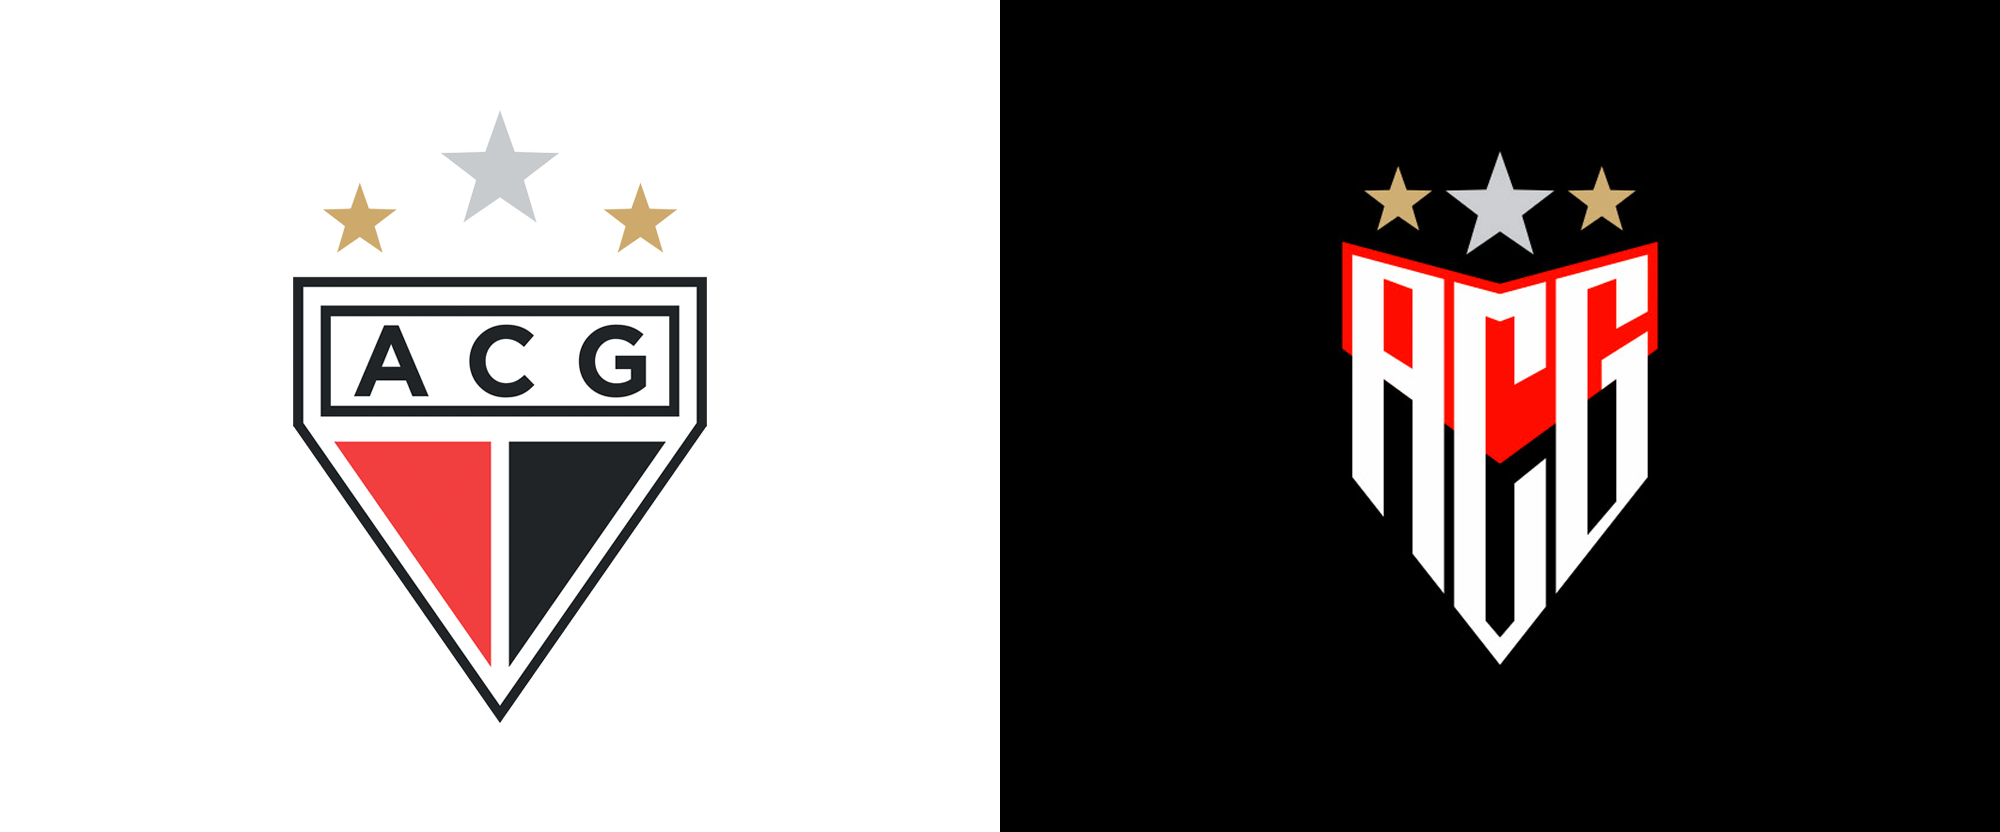 New Logo for Atlético Clube Goianiense by Futbox